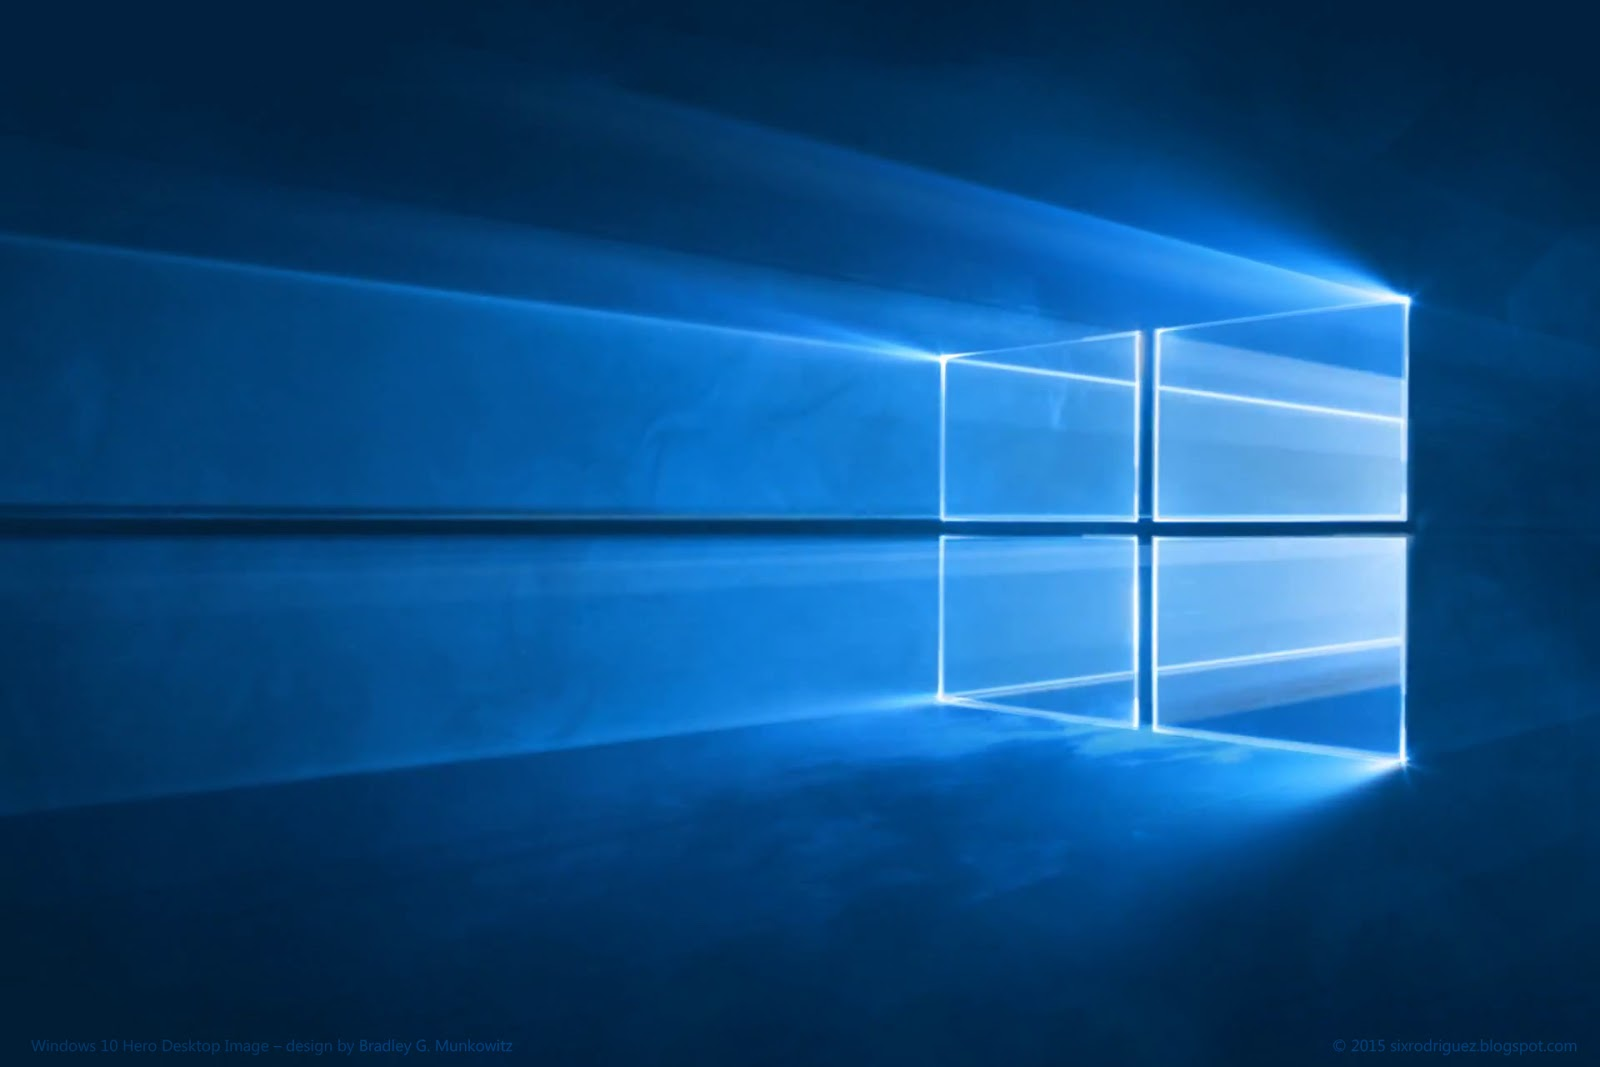 Free Download Windows 10 Hero Desktop Wallpaper